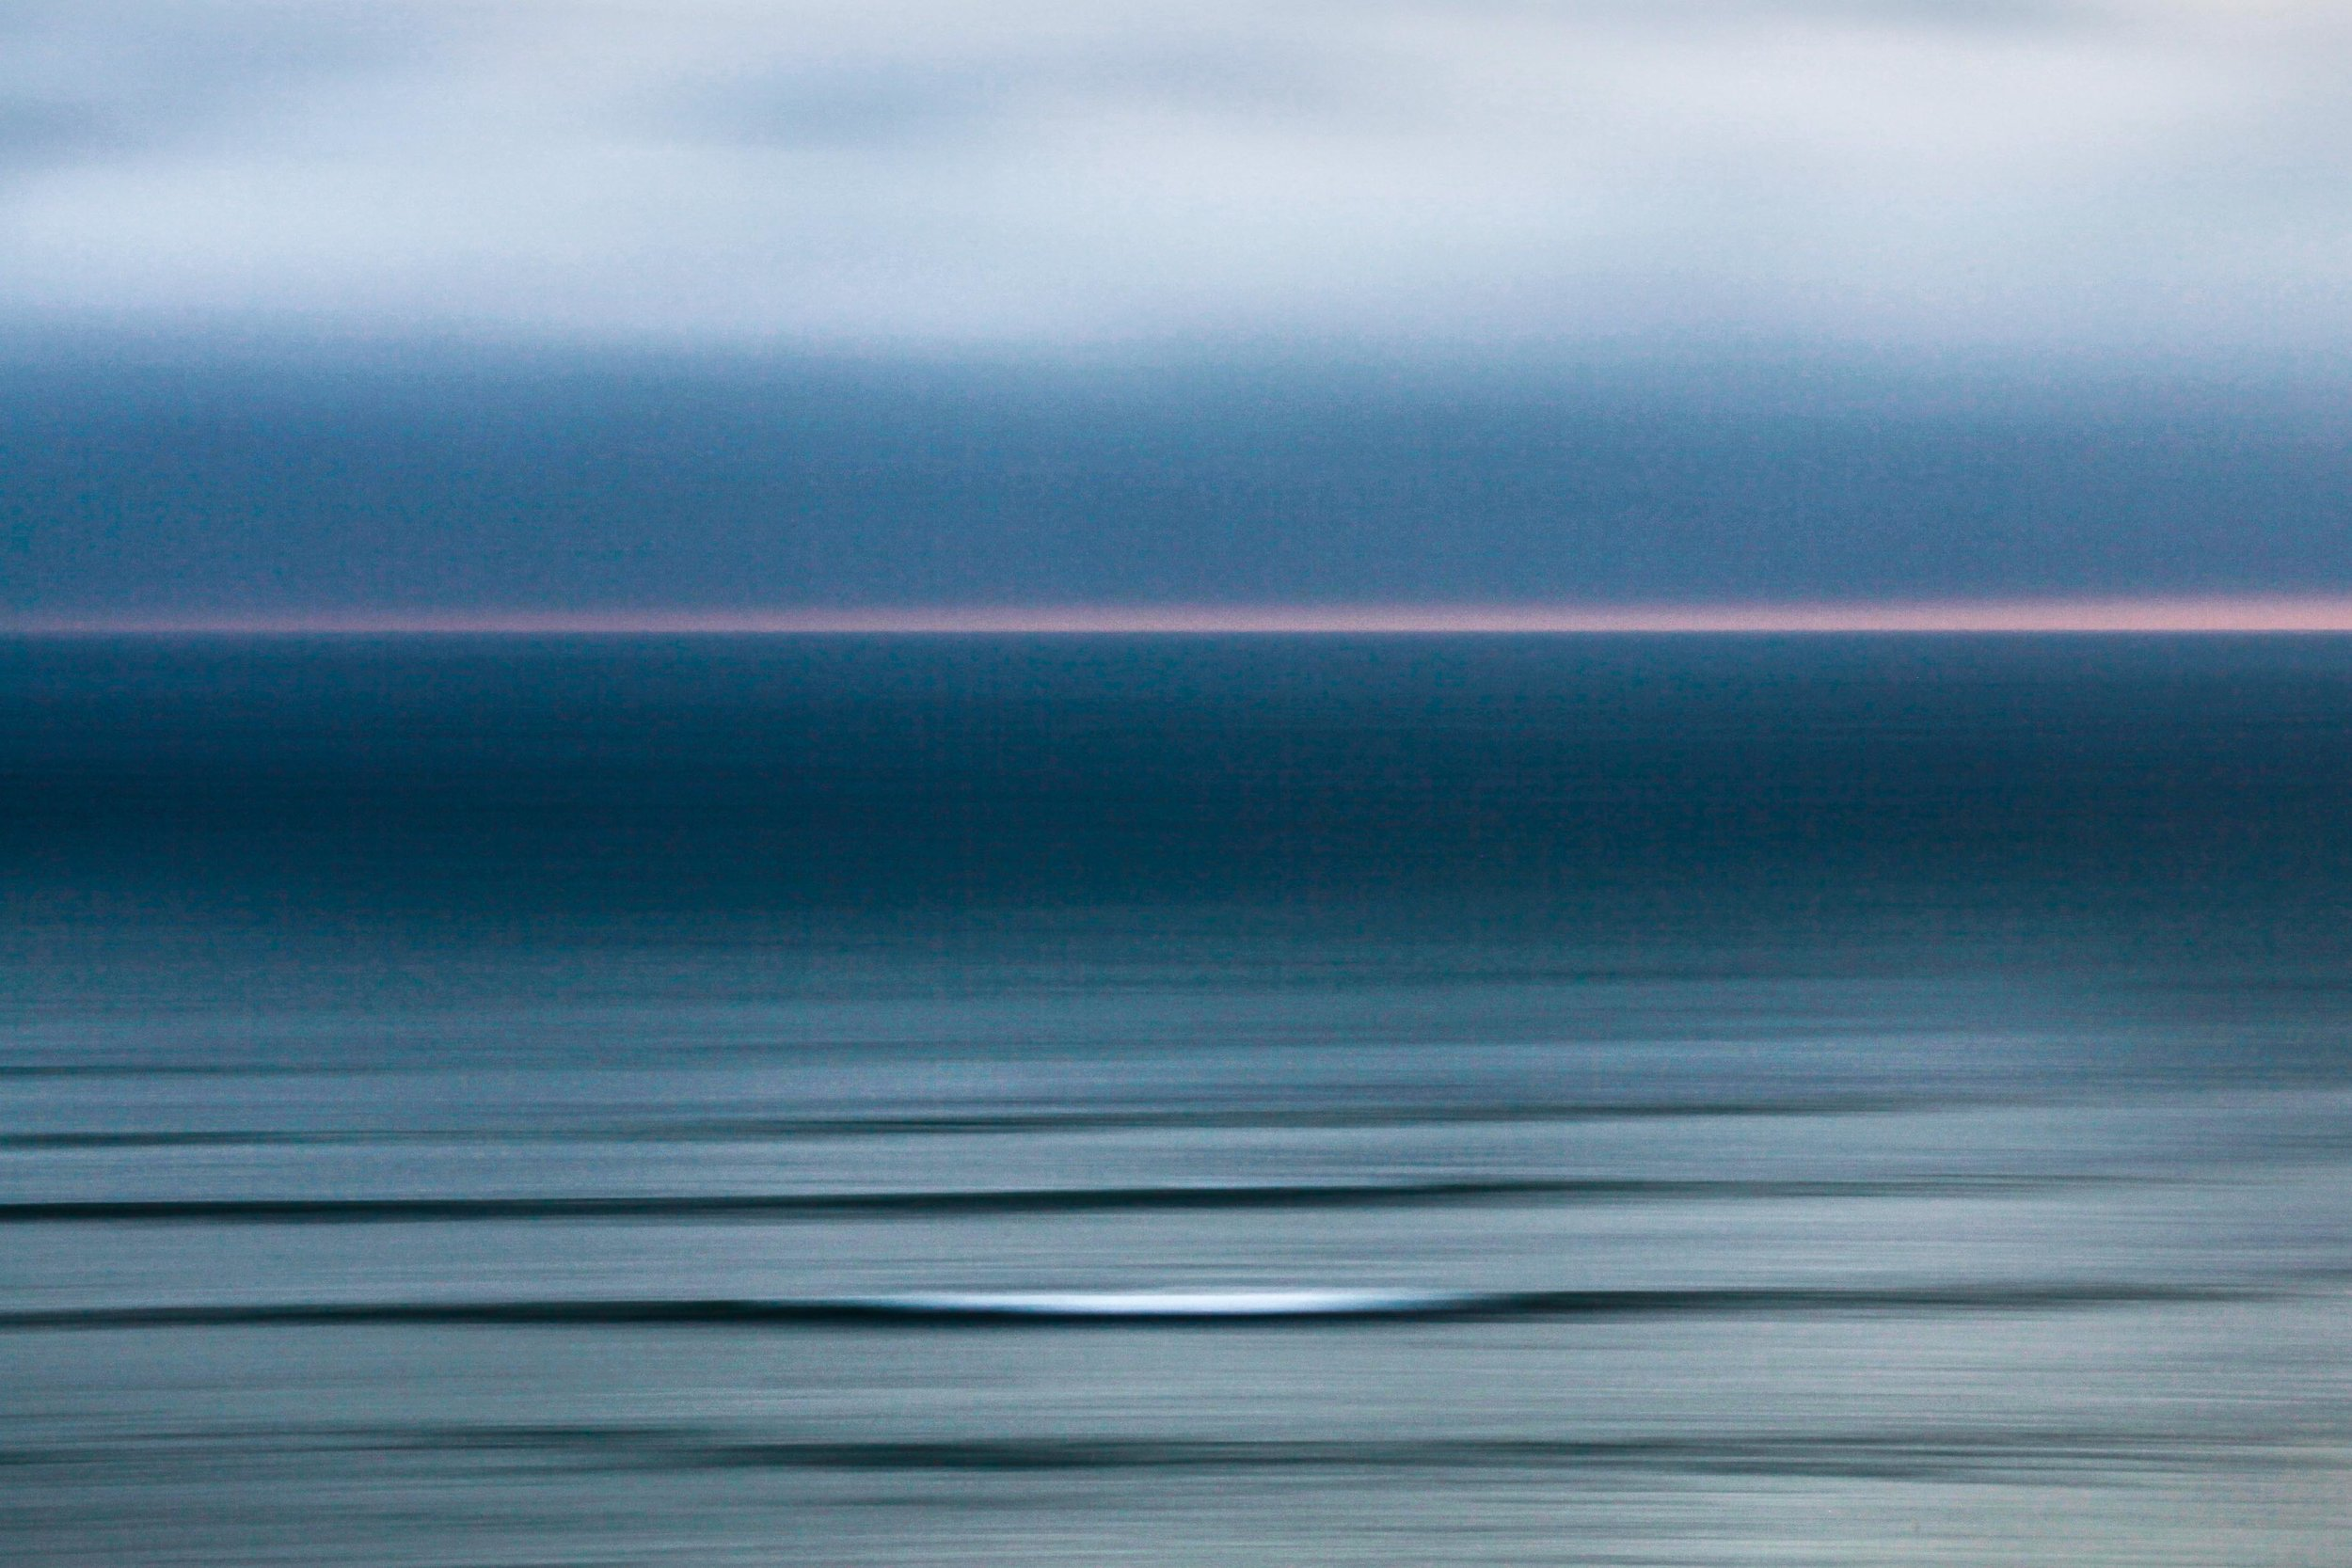 Lima Lines, abstract photography.